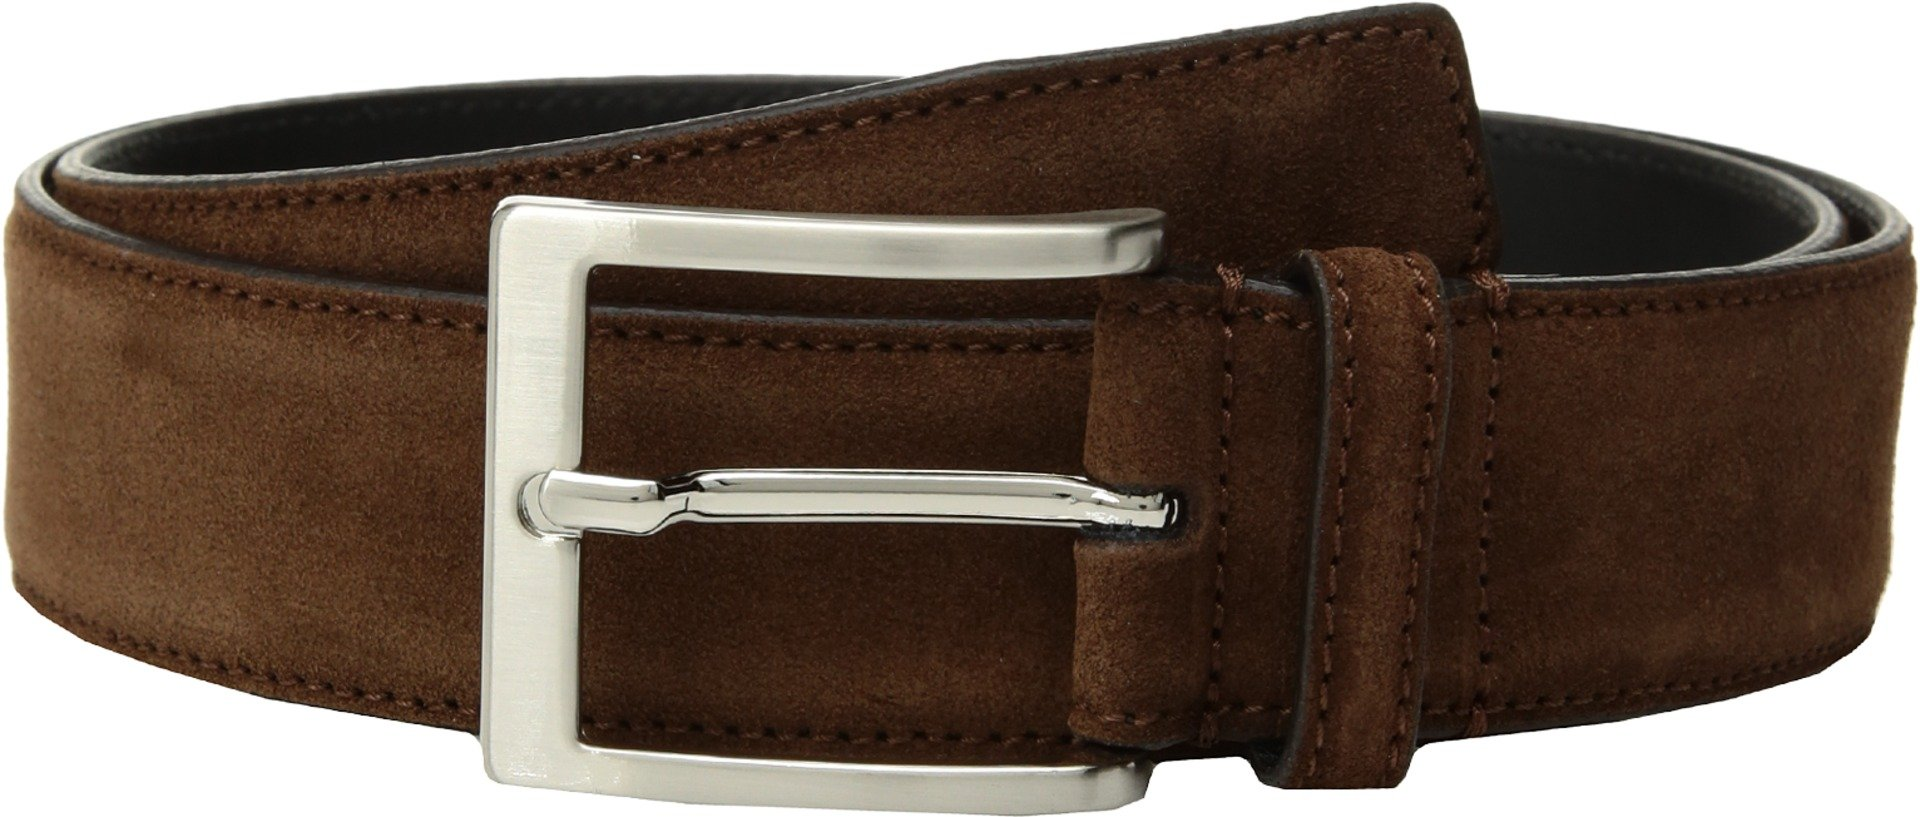 To Boot New York  Men's Belt Medium Brown Suede 40